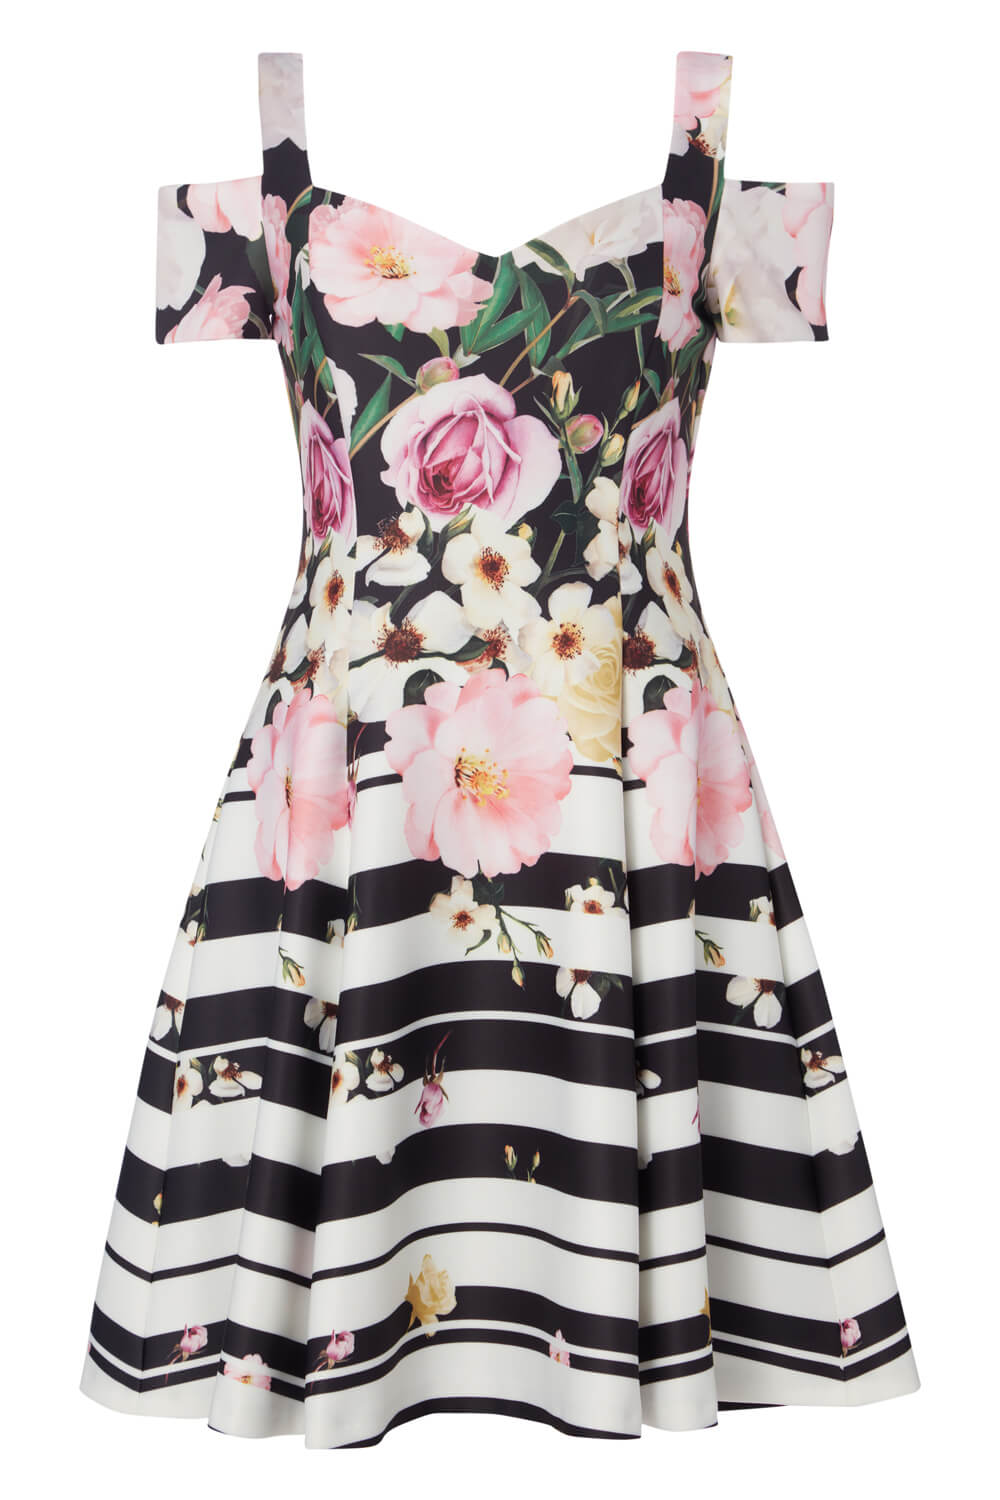 Roman-Originals-Womens-Black-Floral-Stripe-Print-Skater-Dress-Sizes-10-20